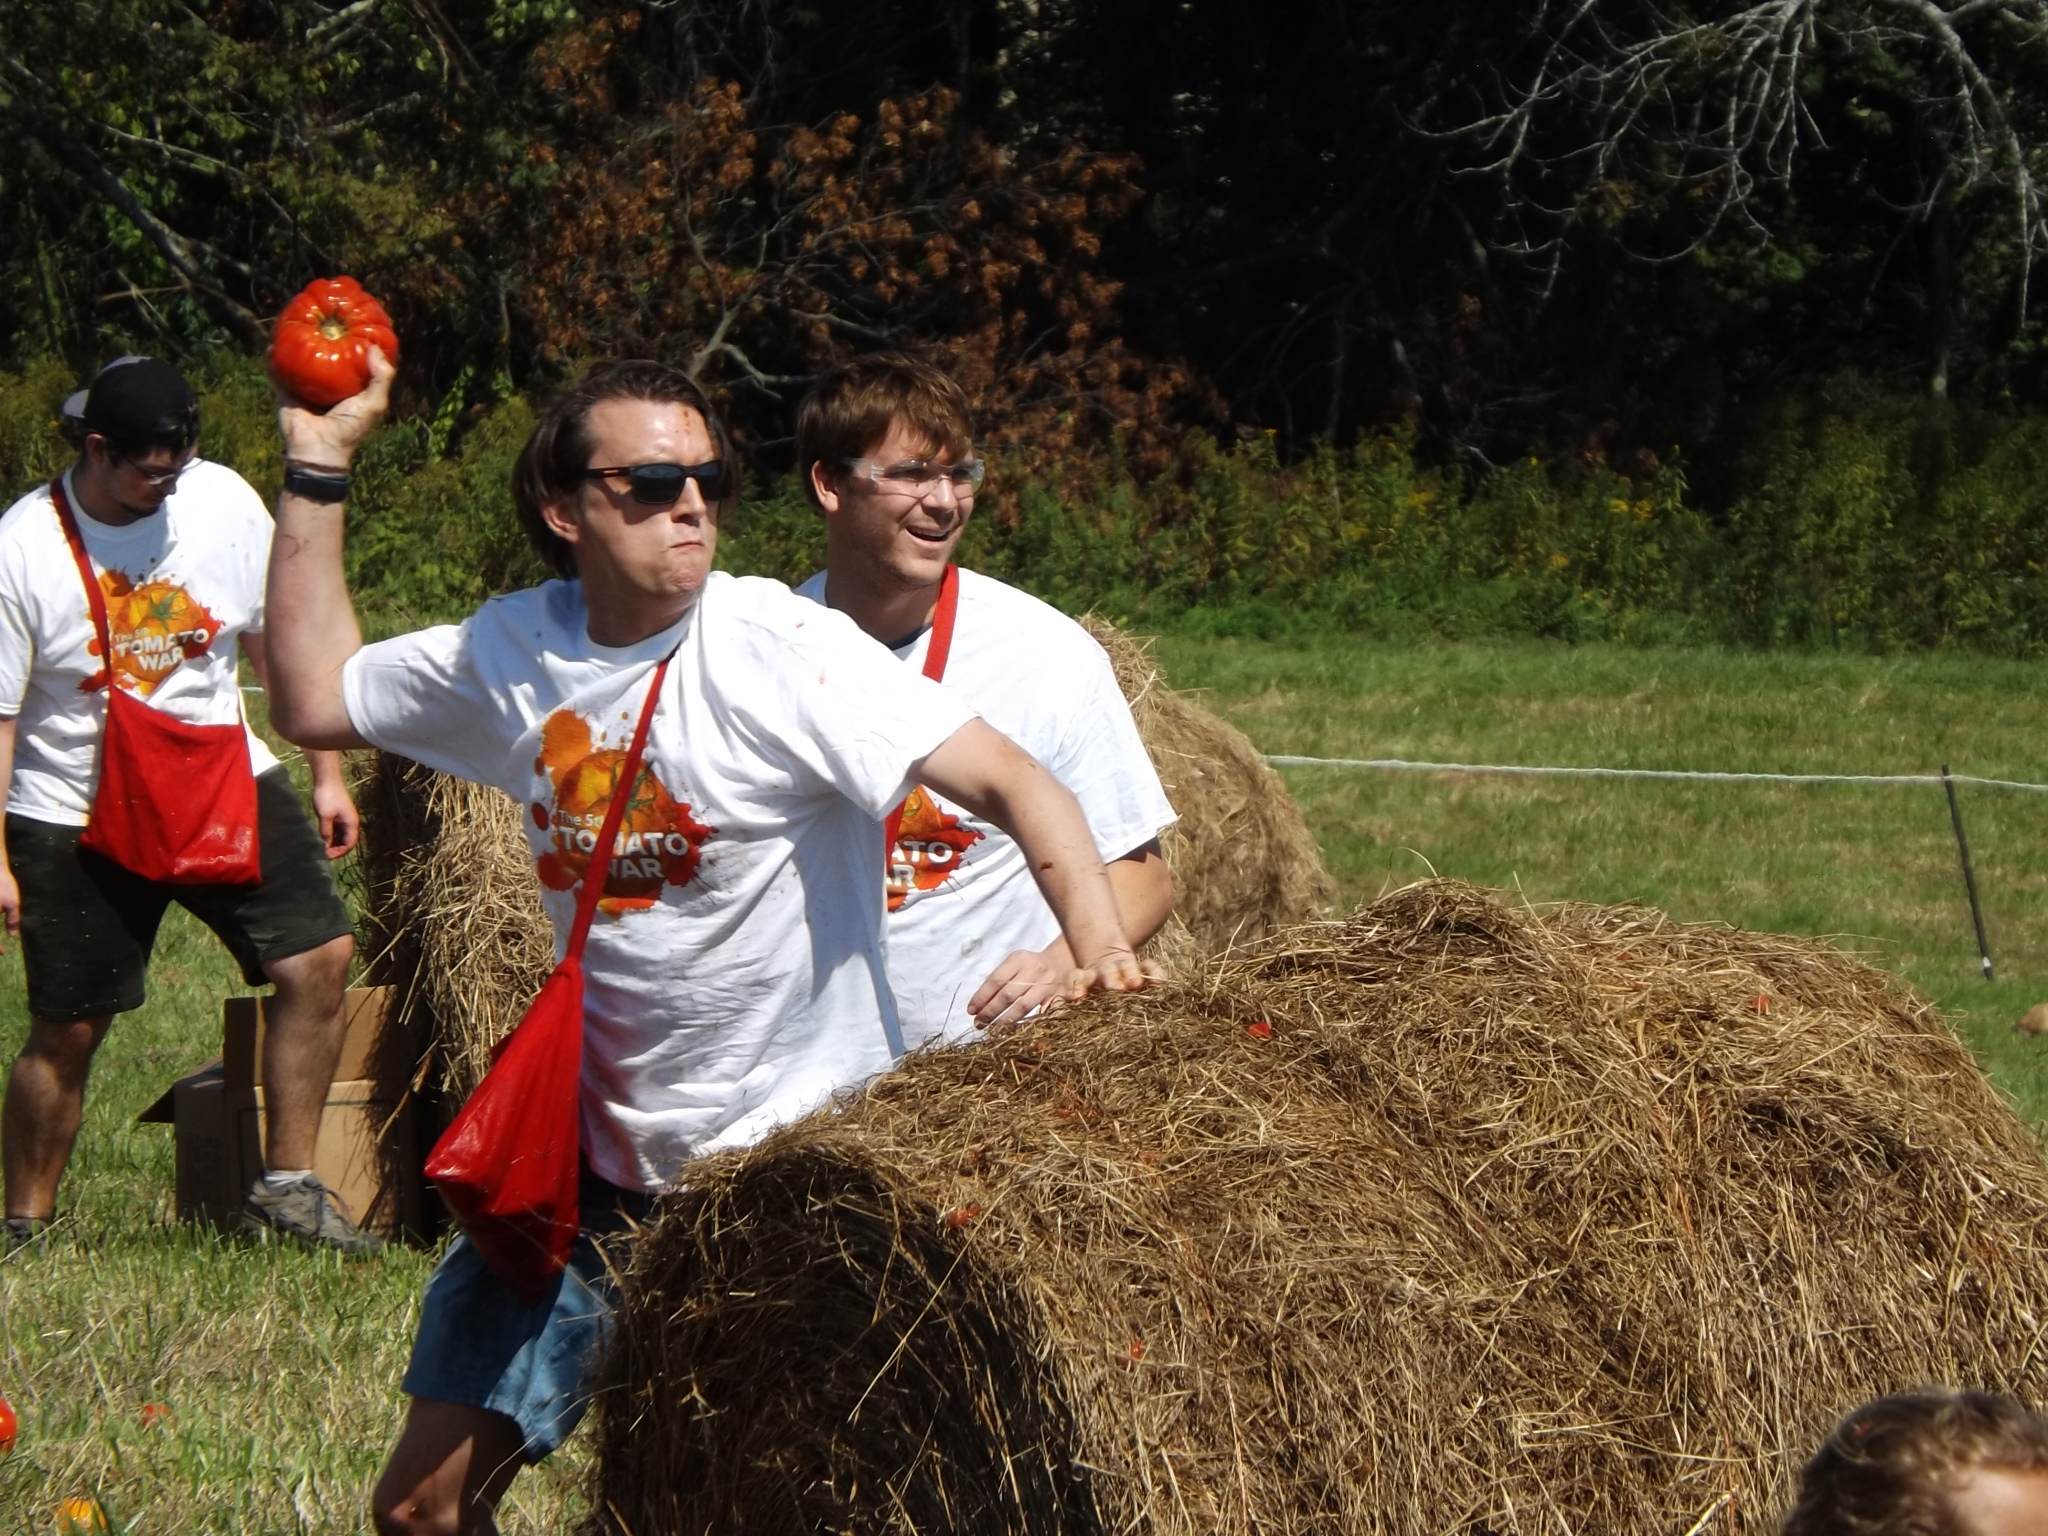 <strong>Grasping battered tomatoes in their hands, Tomato War participants popped up from behind hay bales to lob juicy red ammo at their opponents. <em>Photo by Kaitlin Lyle.</em></strong>